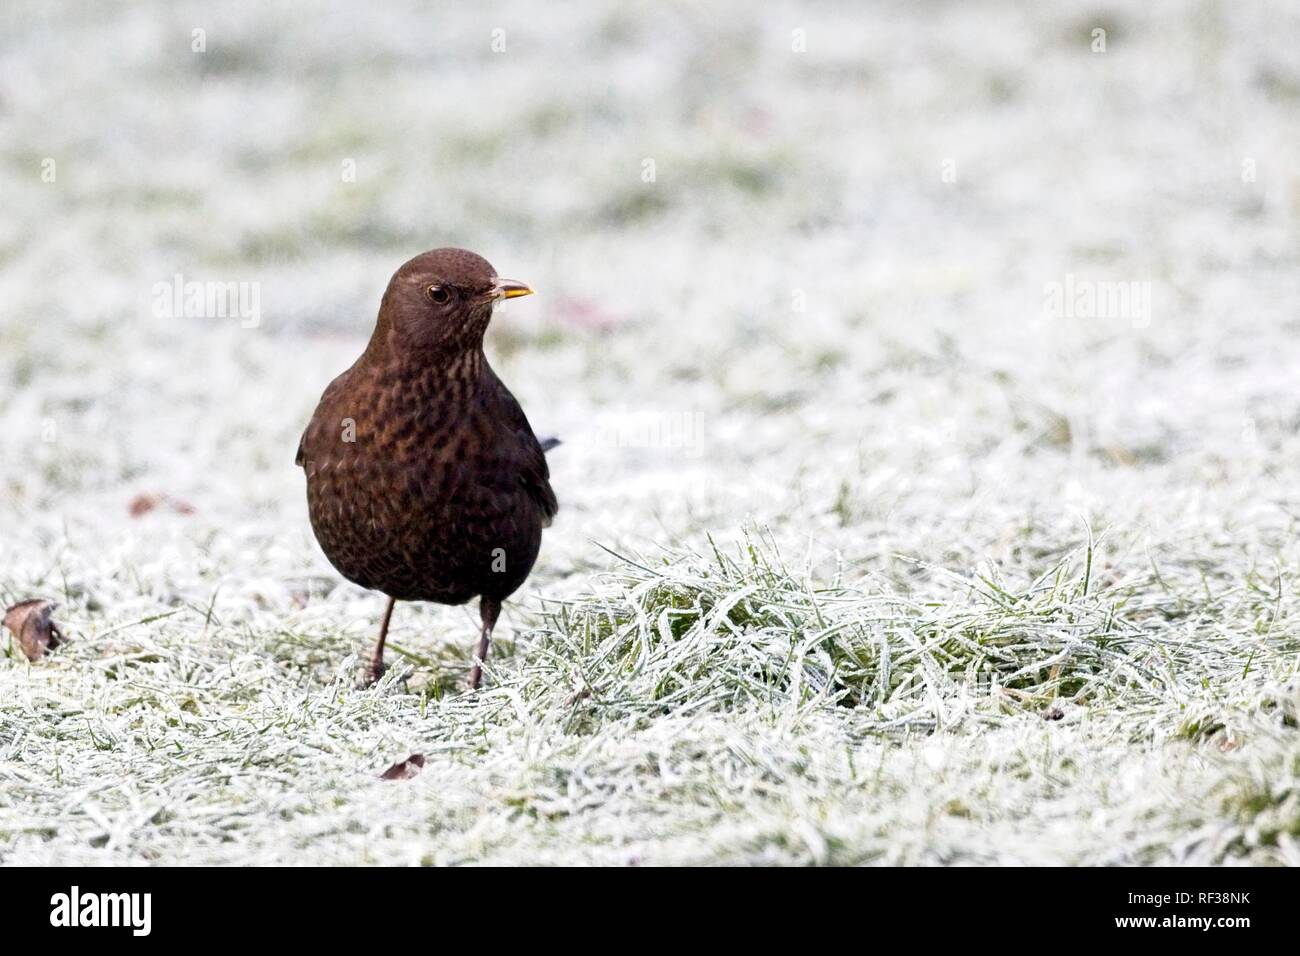 Hailsham, UK. 24th Jan 2019.UK weather.A Blackbird (Turdus merula) scavenges for food this morning after a cold night in Sussex. Wildlife will struggle to find food as the cold weather worsens this week. Hailsham, East Sussex, UK. Credit: Ed Brown/Alamy Live News - Stock Image